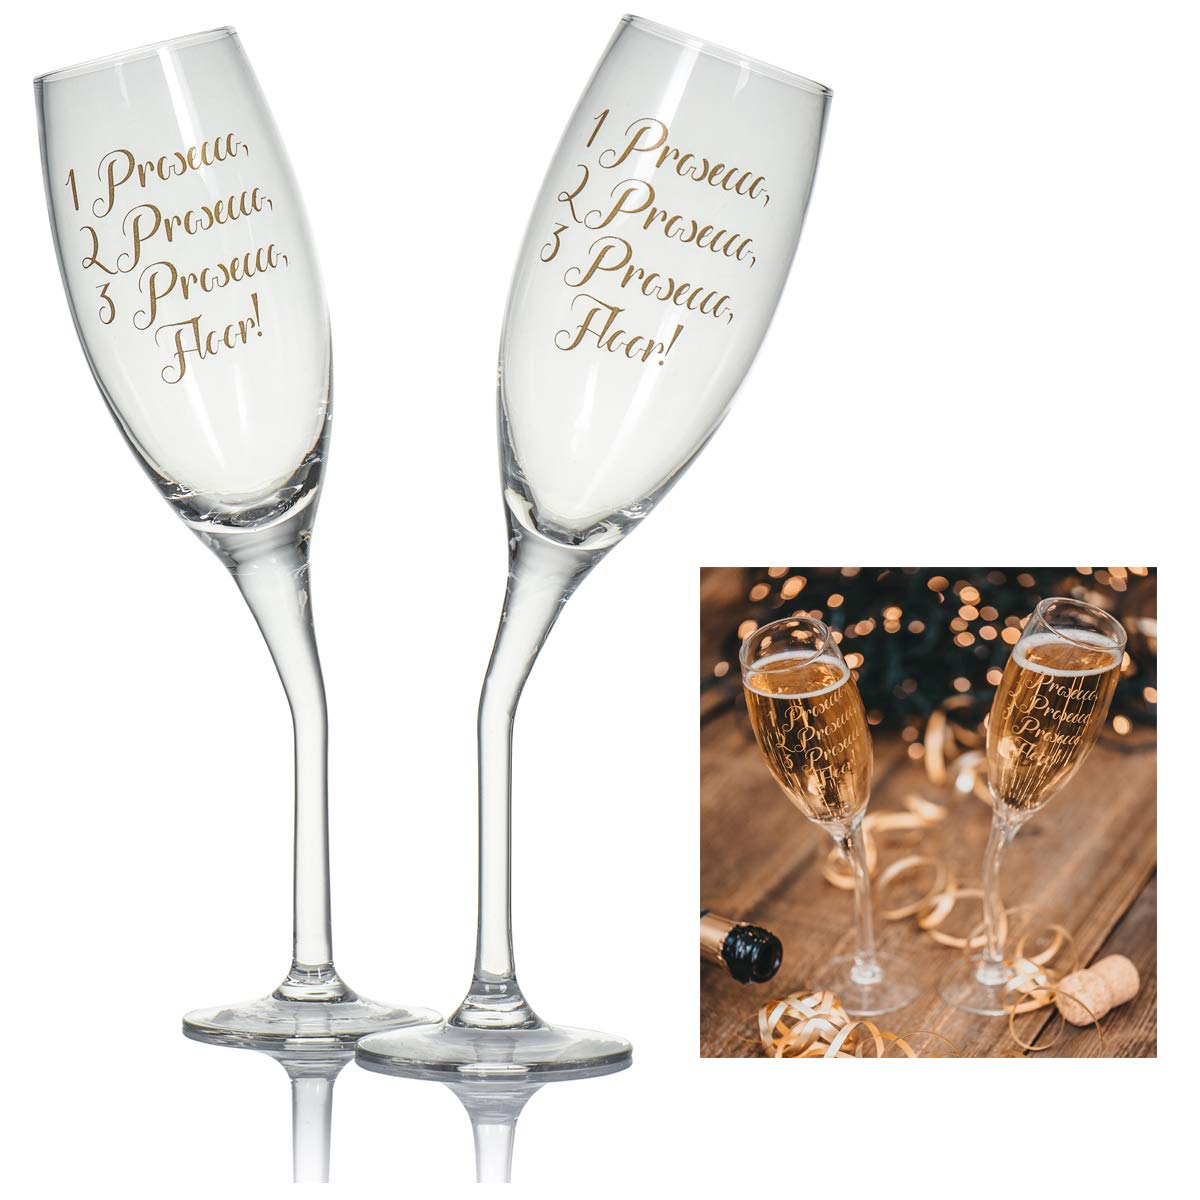 Set of 3 Prosecco STEMLESS Flutes Wine Glass Gift Clear Champagne Gold Design